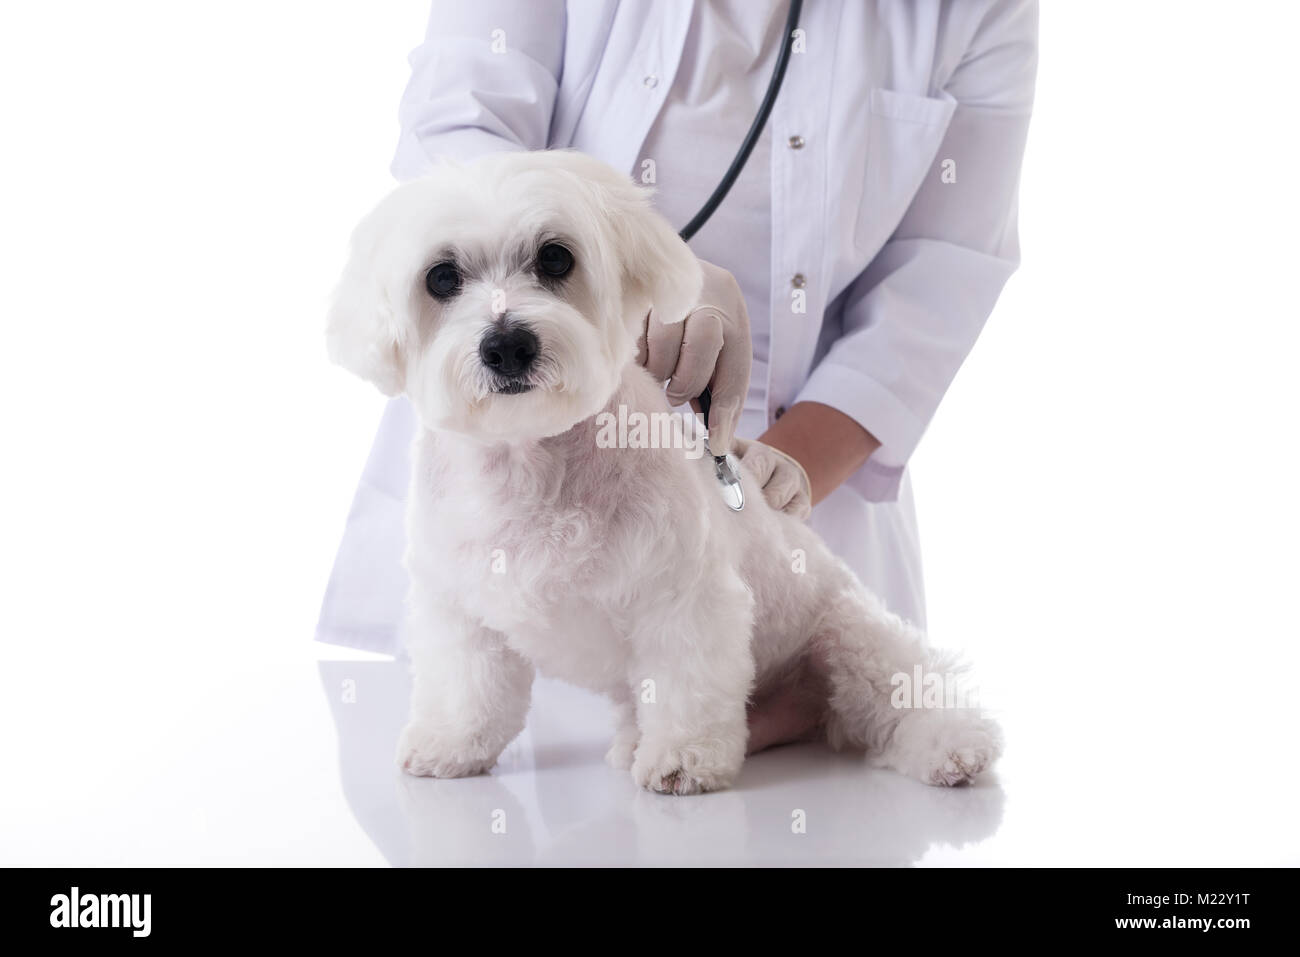 Veterinarian examining a cute maltese dog with a stethoscope on the table,isolated over white background - Stock Image